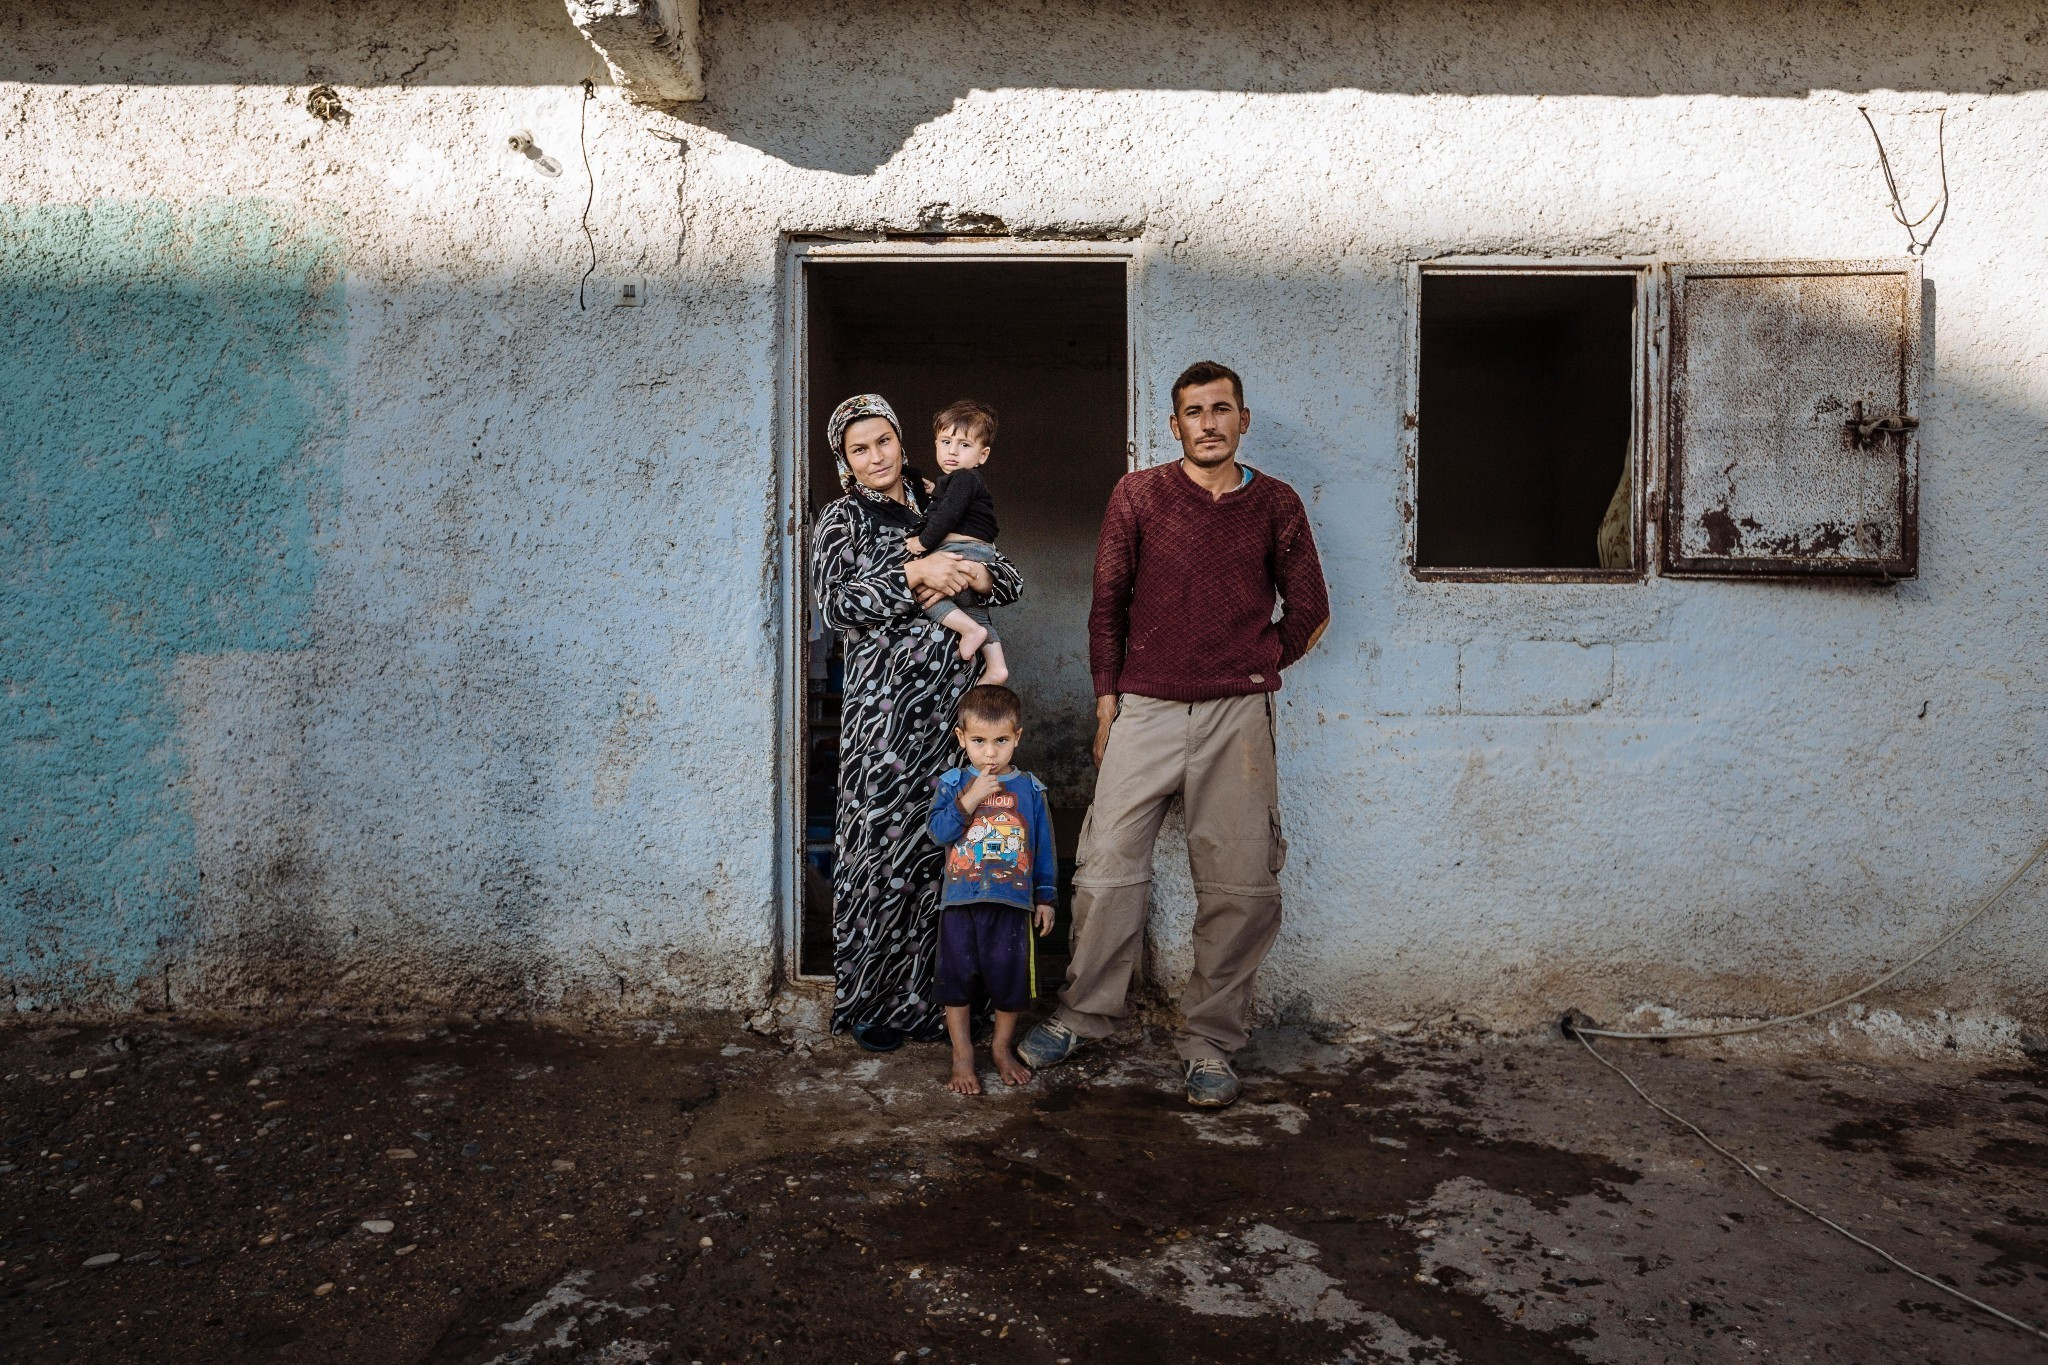 Images of the Displaced